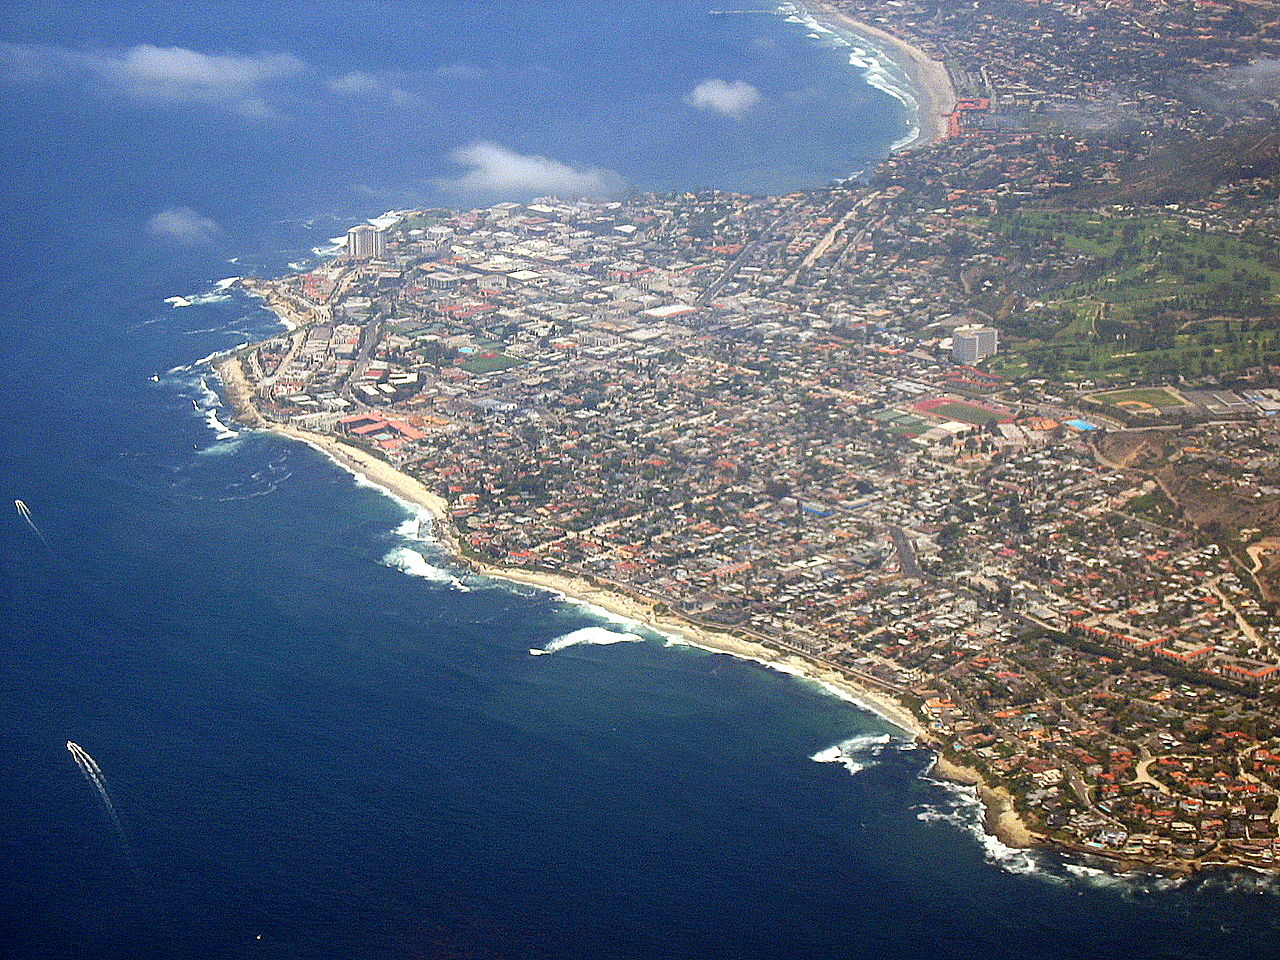 La Jolla Seaside